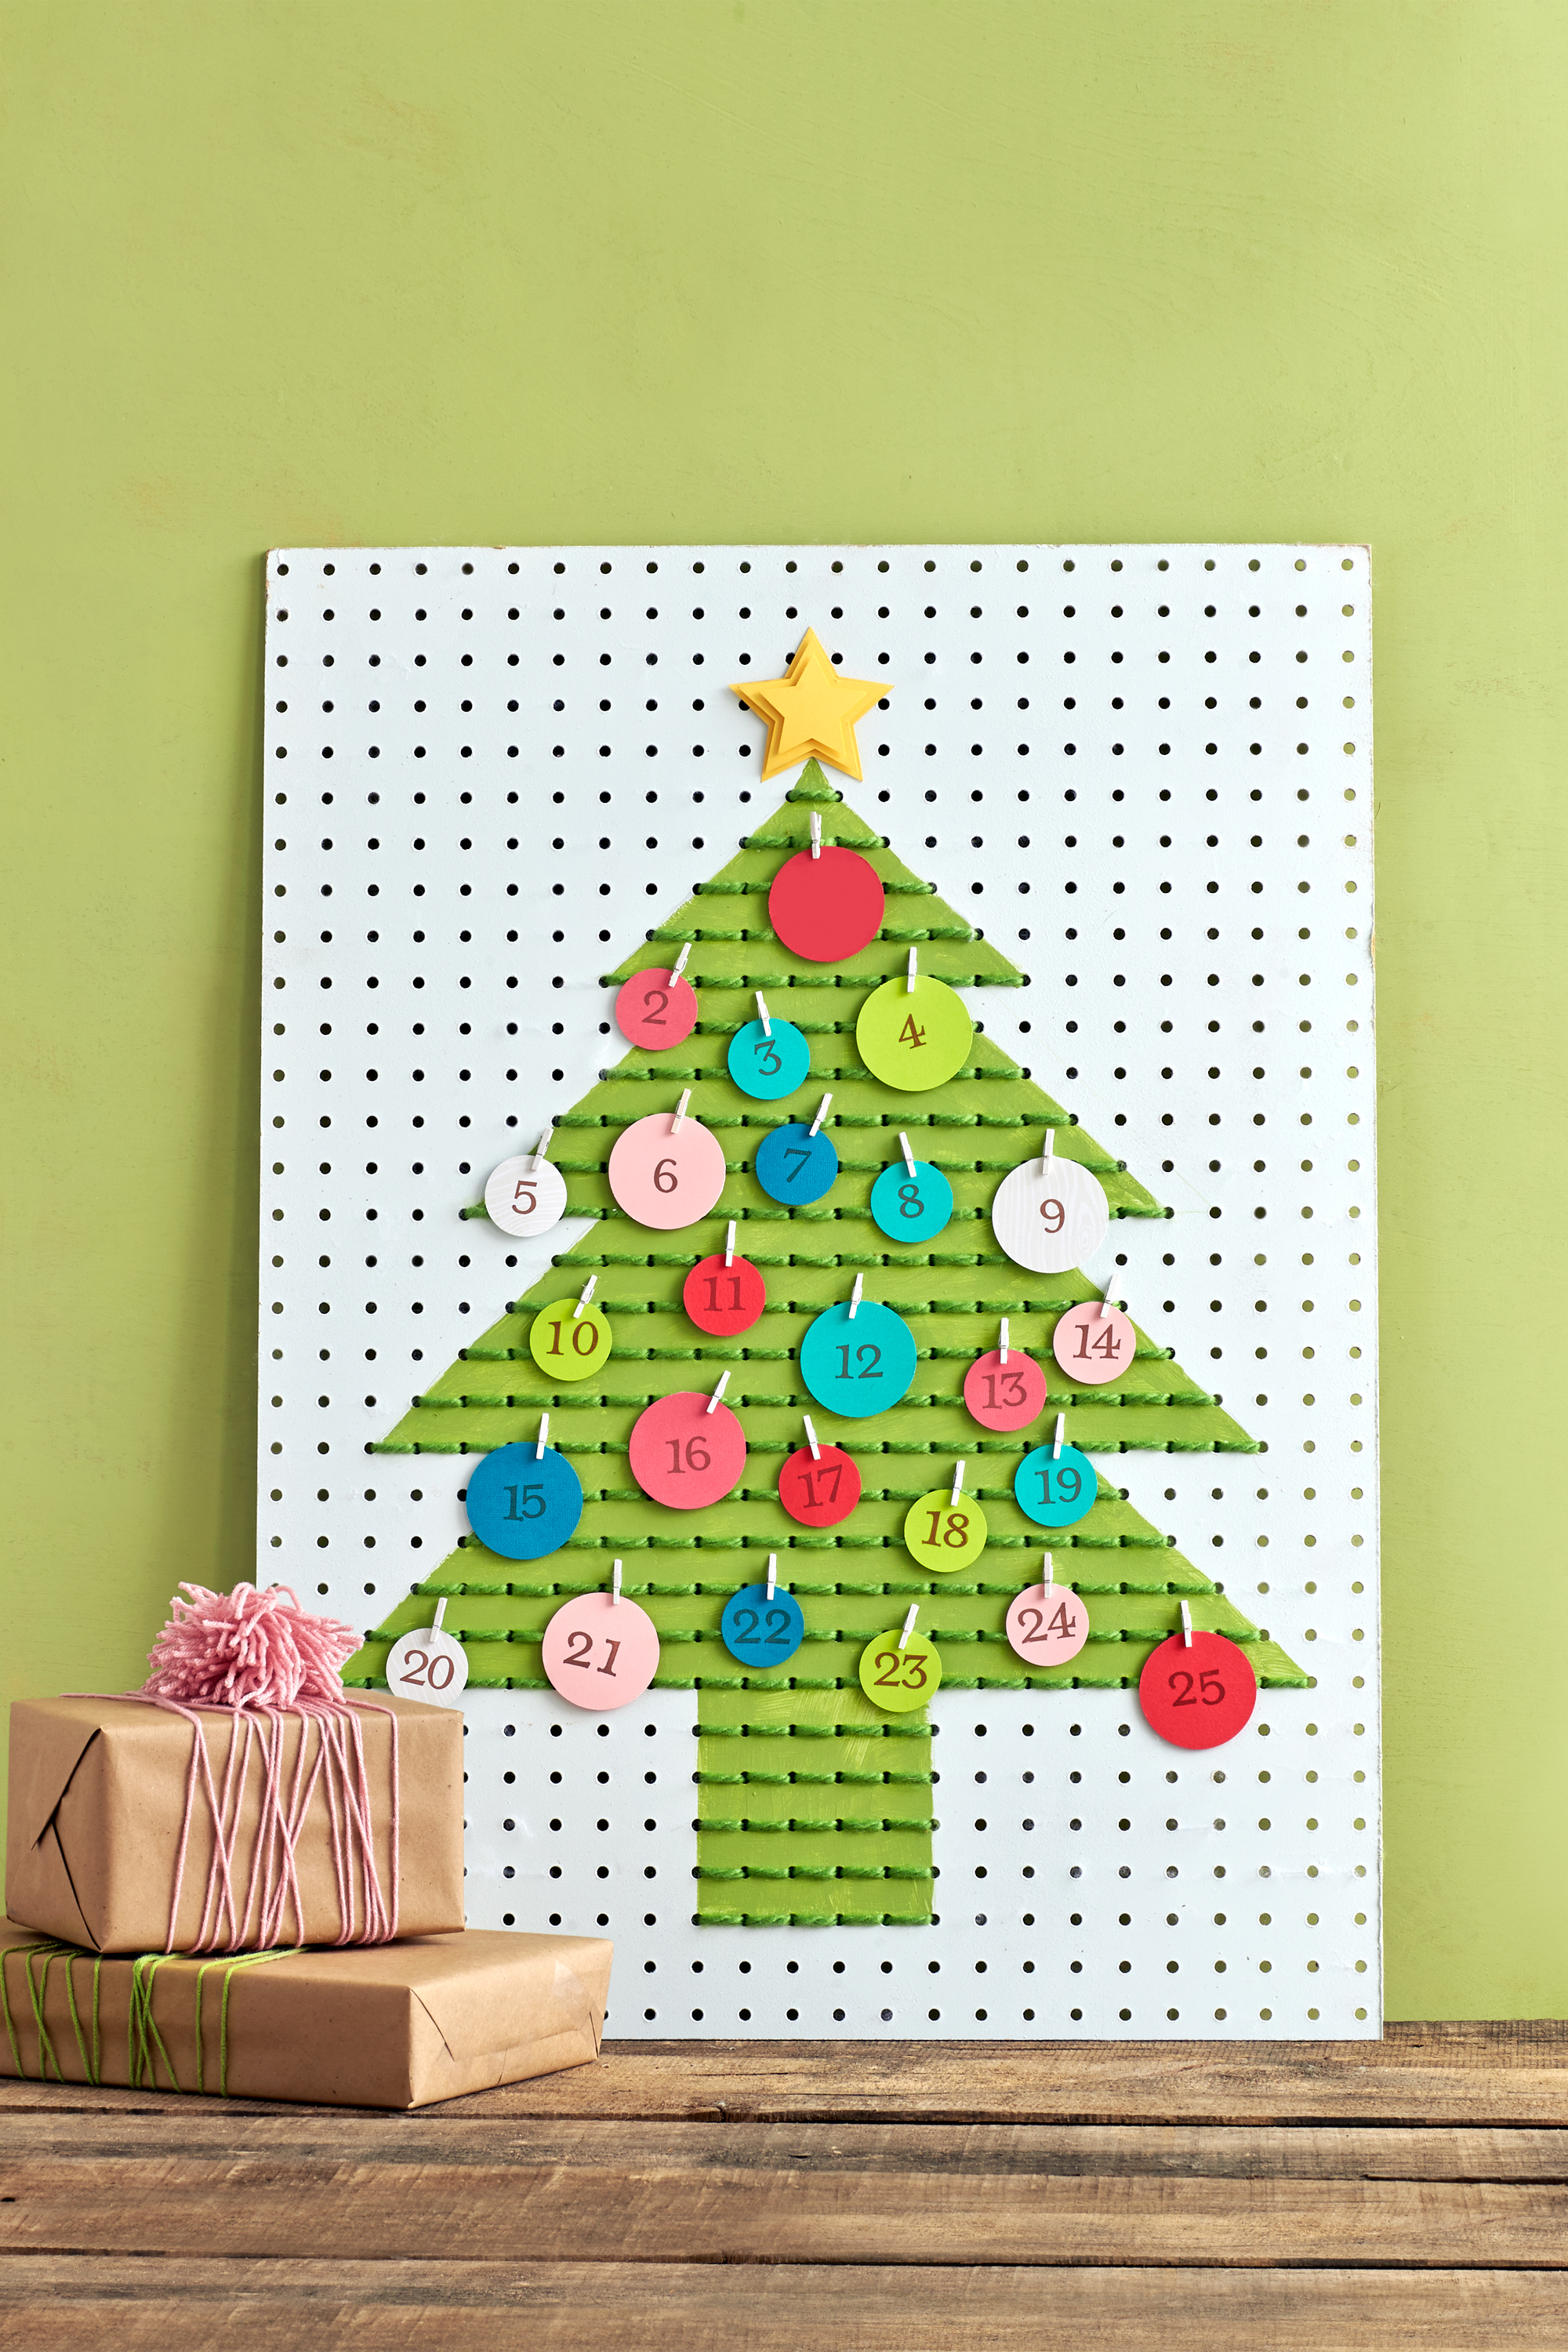 33 diy advent calendar ideas homemade christmas advent calendars